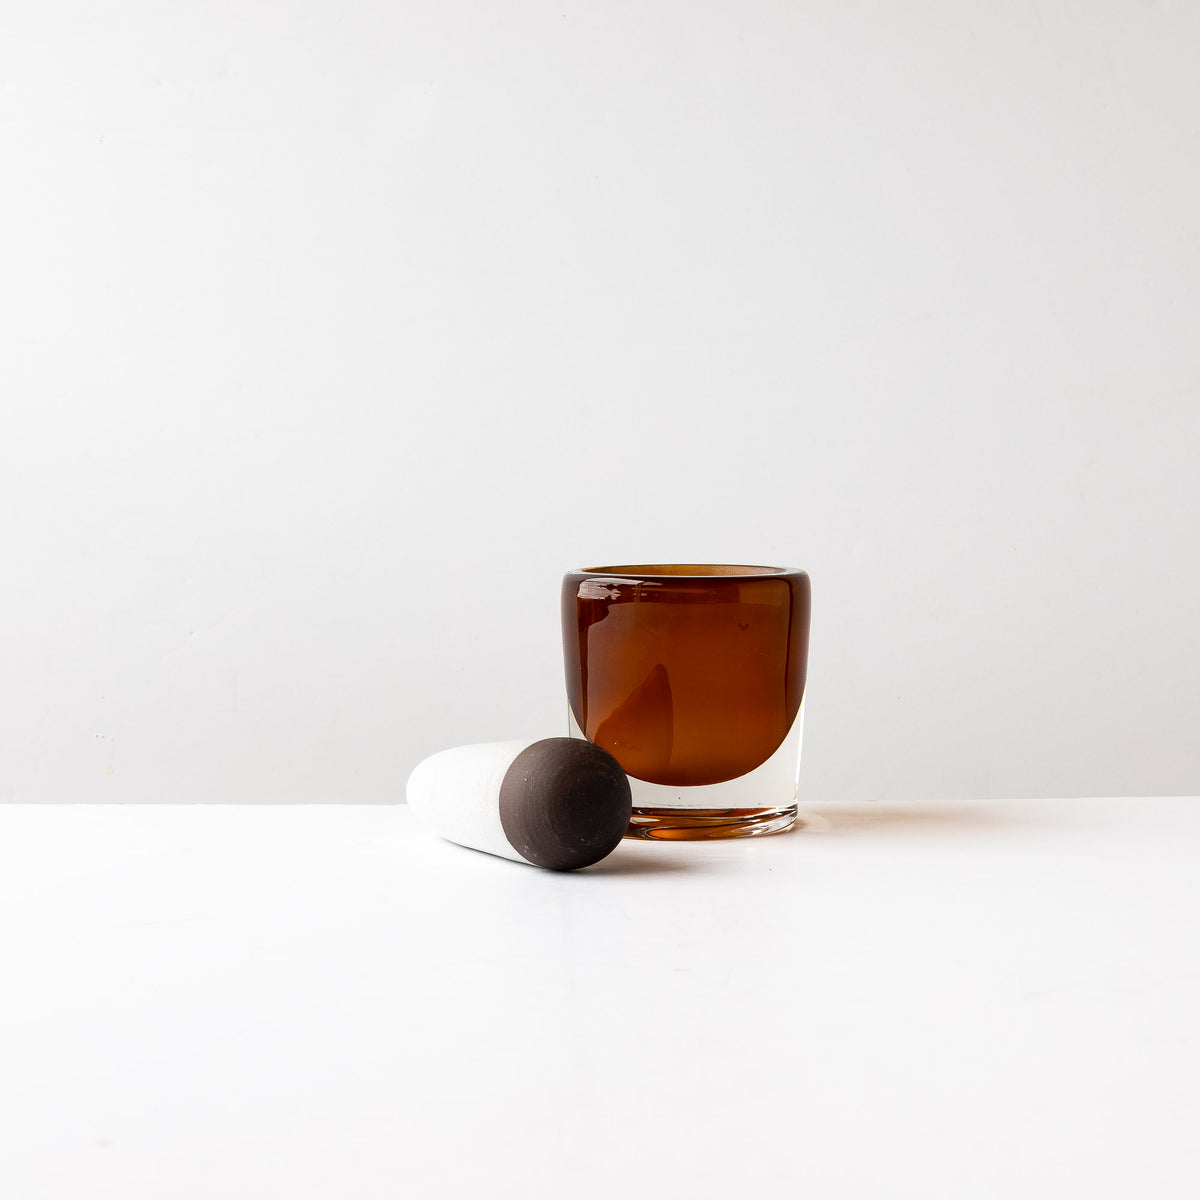 Front View - Amber Pestle & Mortar in Blown Glass & Ceramic - Sold by Chic & Basta